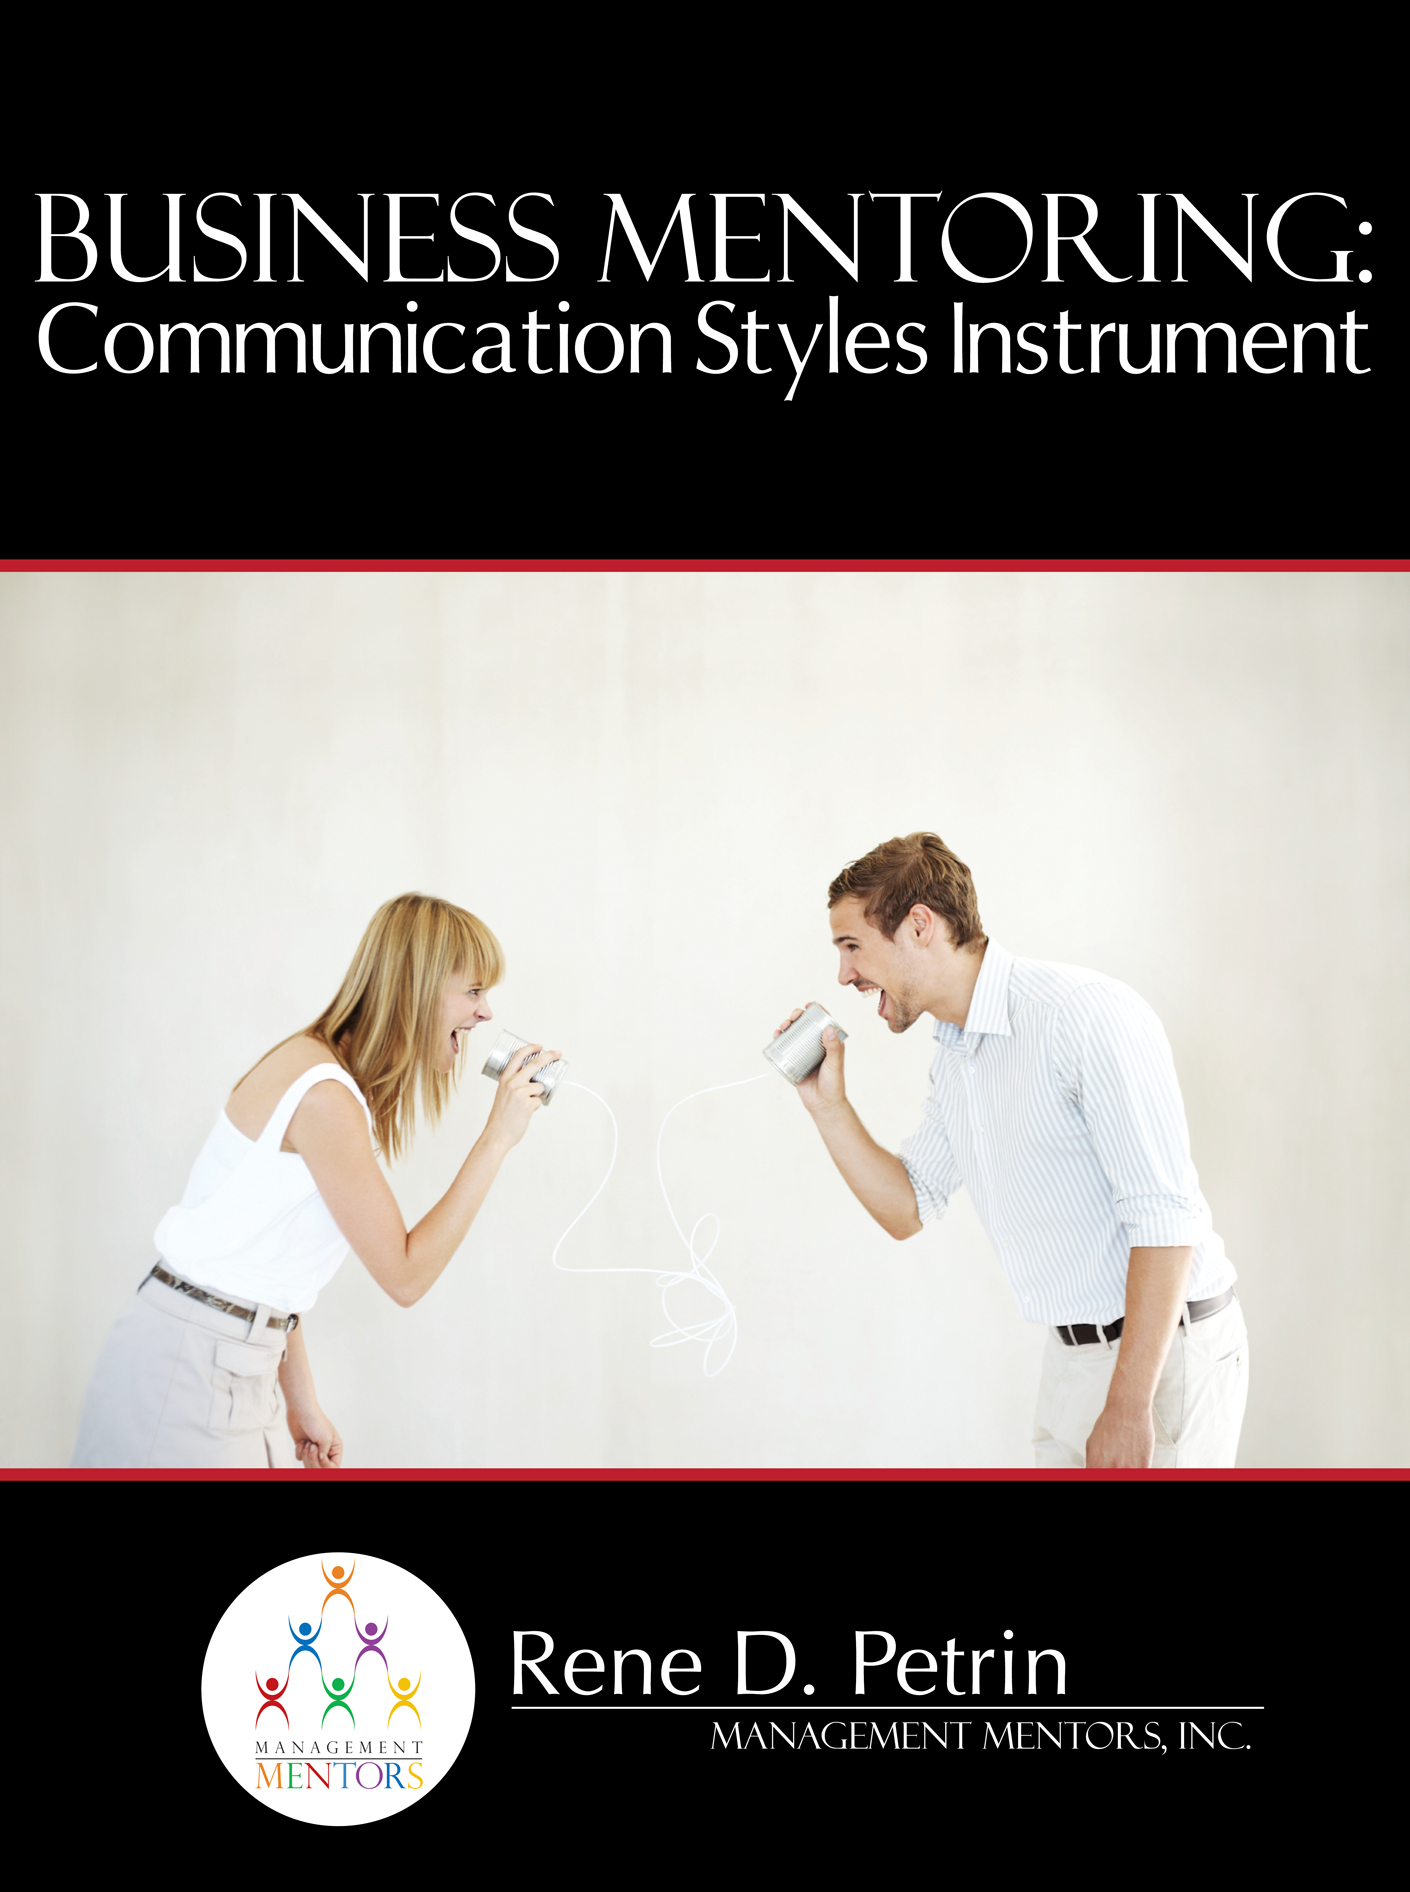 Mentoring Communication Styles Instrument